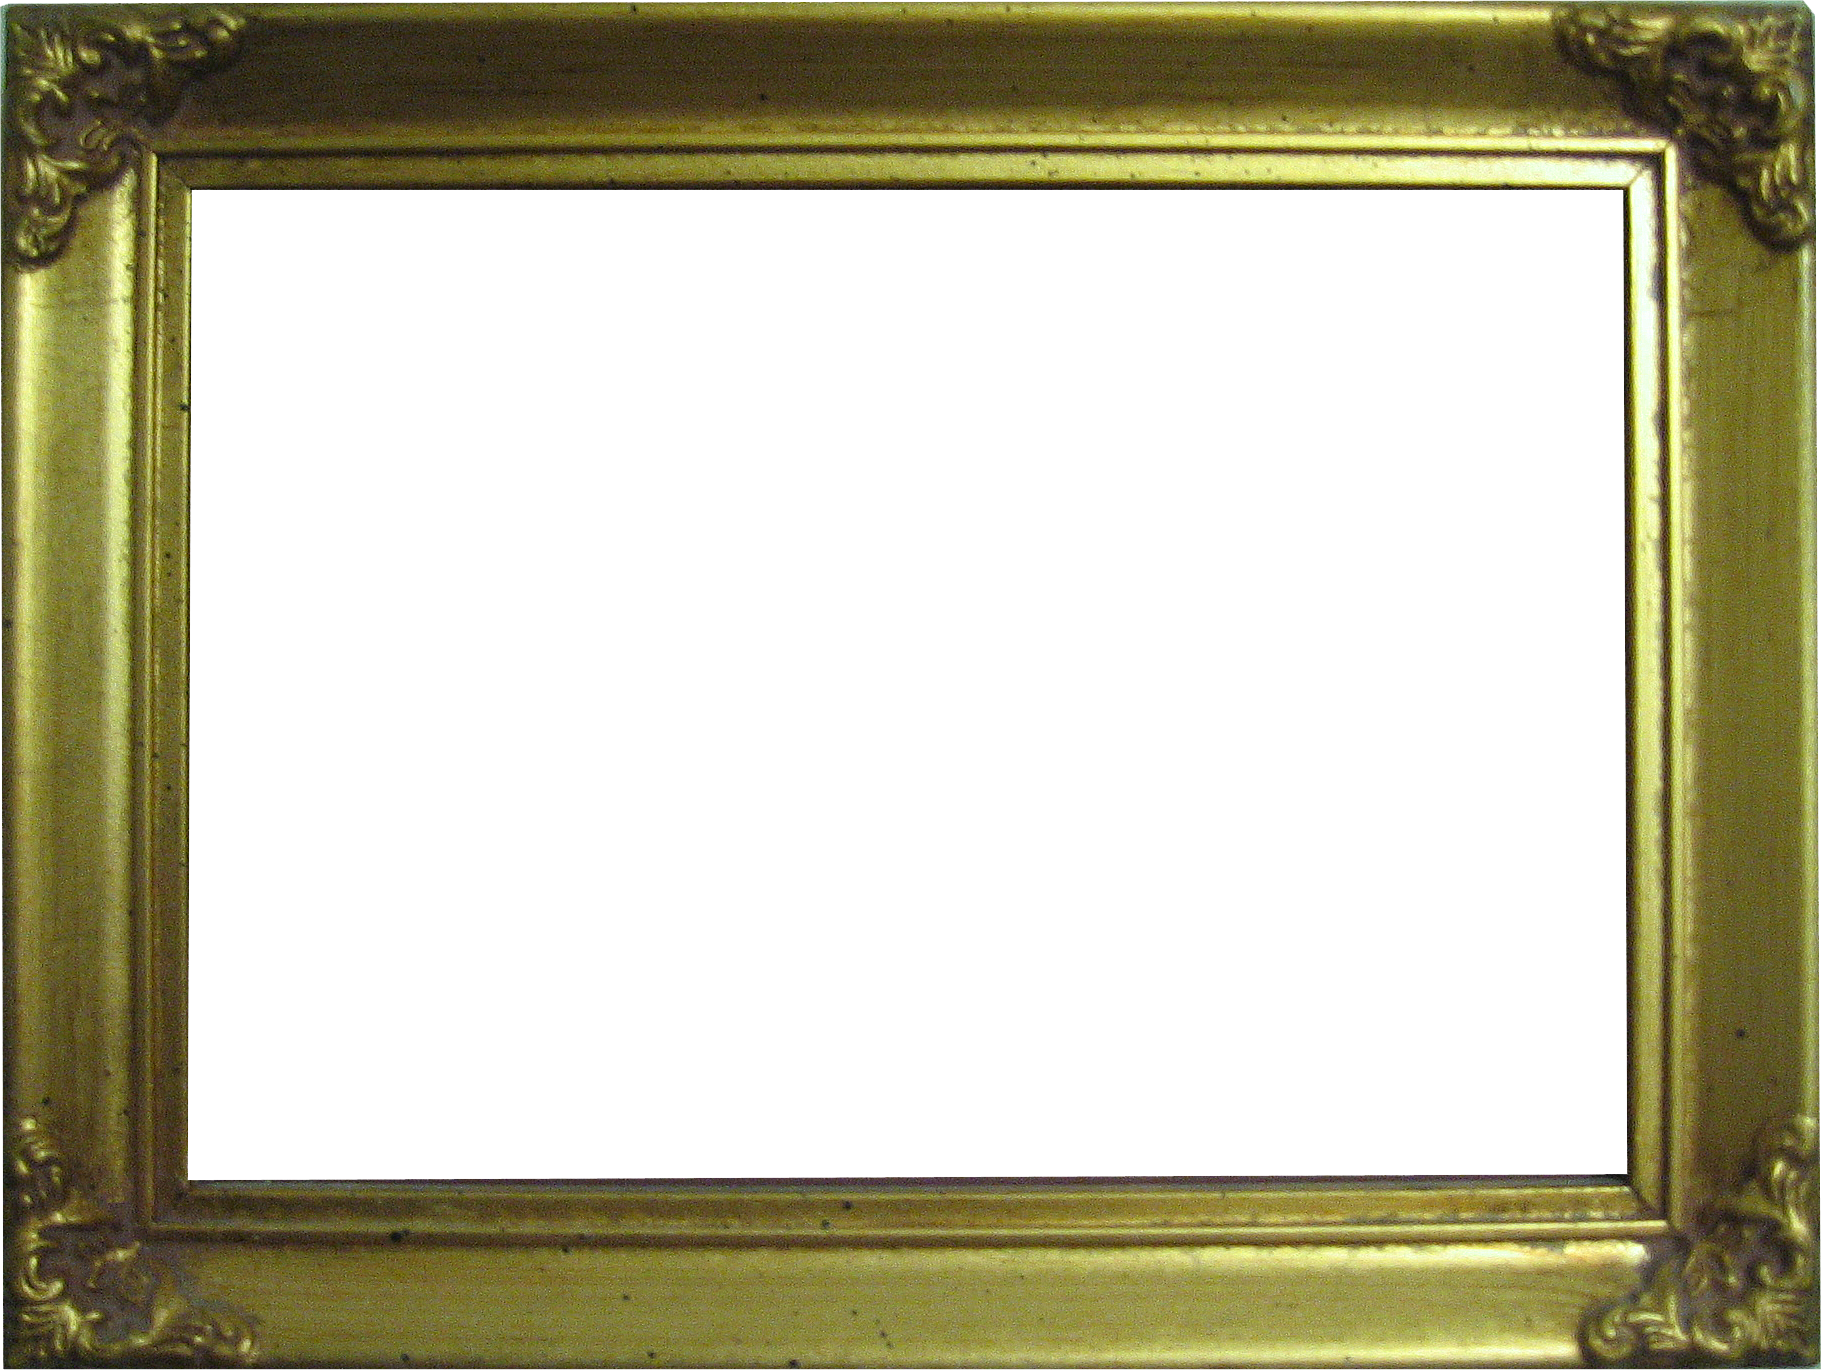 transparent picture frame neme5is frame stock by neme5is